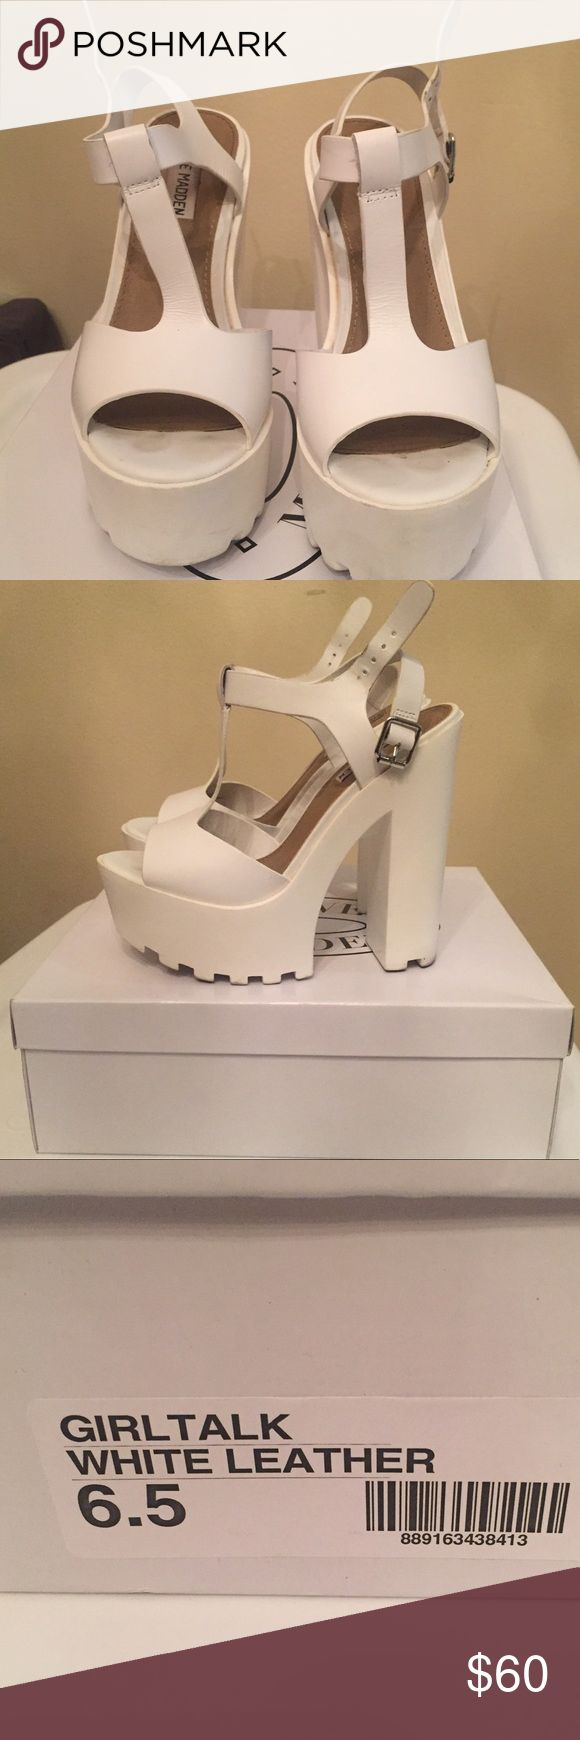 Steve Madden chunky heel shoes White leather, strappy, platform, chunky heels.  Steve Madden. Steve Madden Shoes Platforms